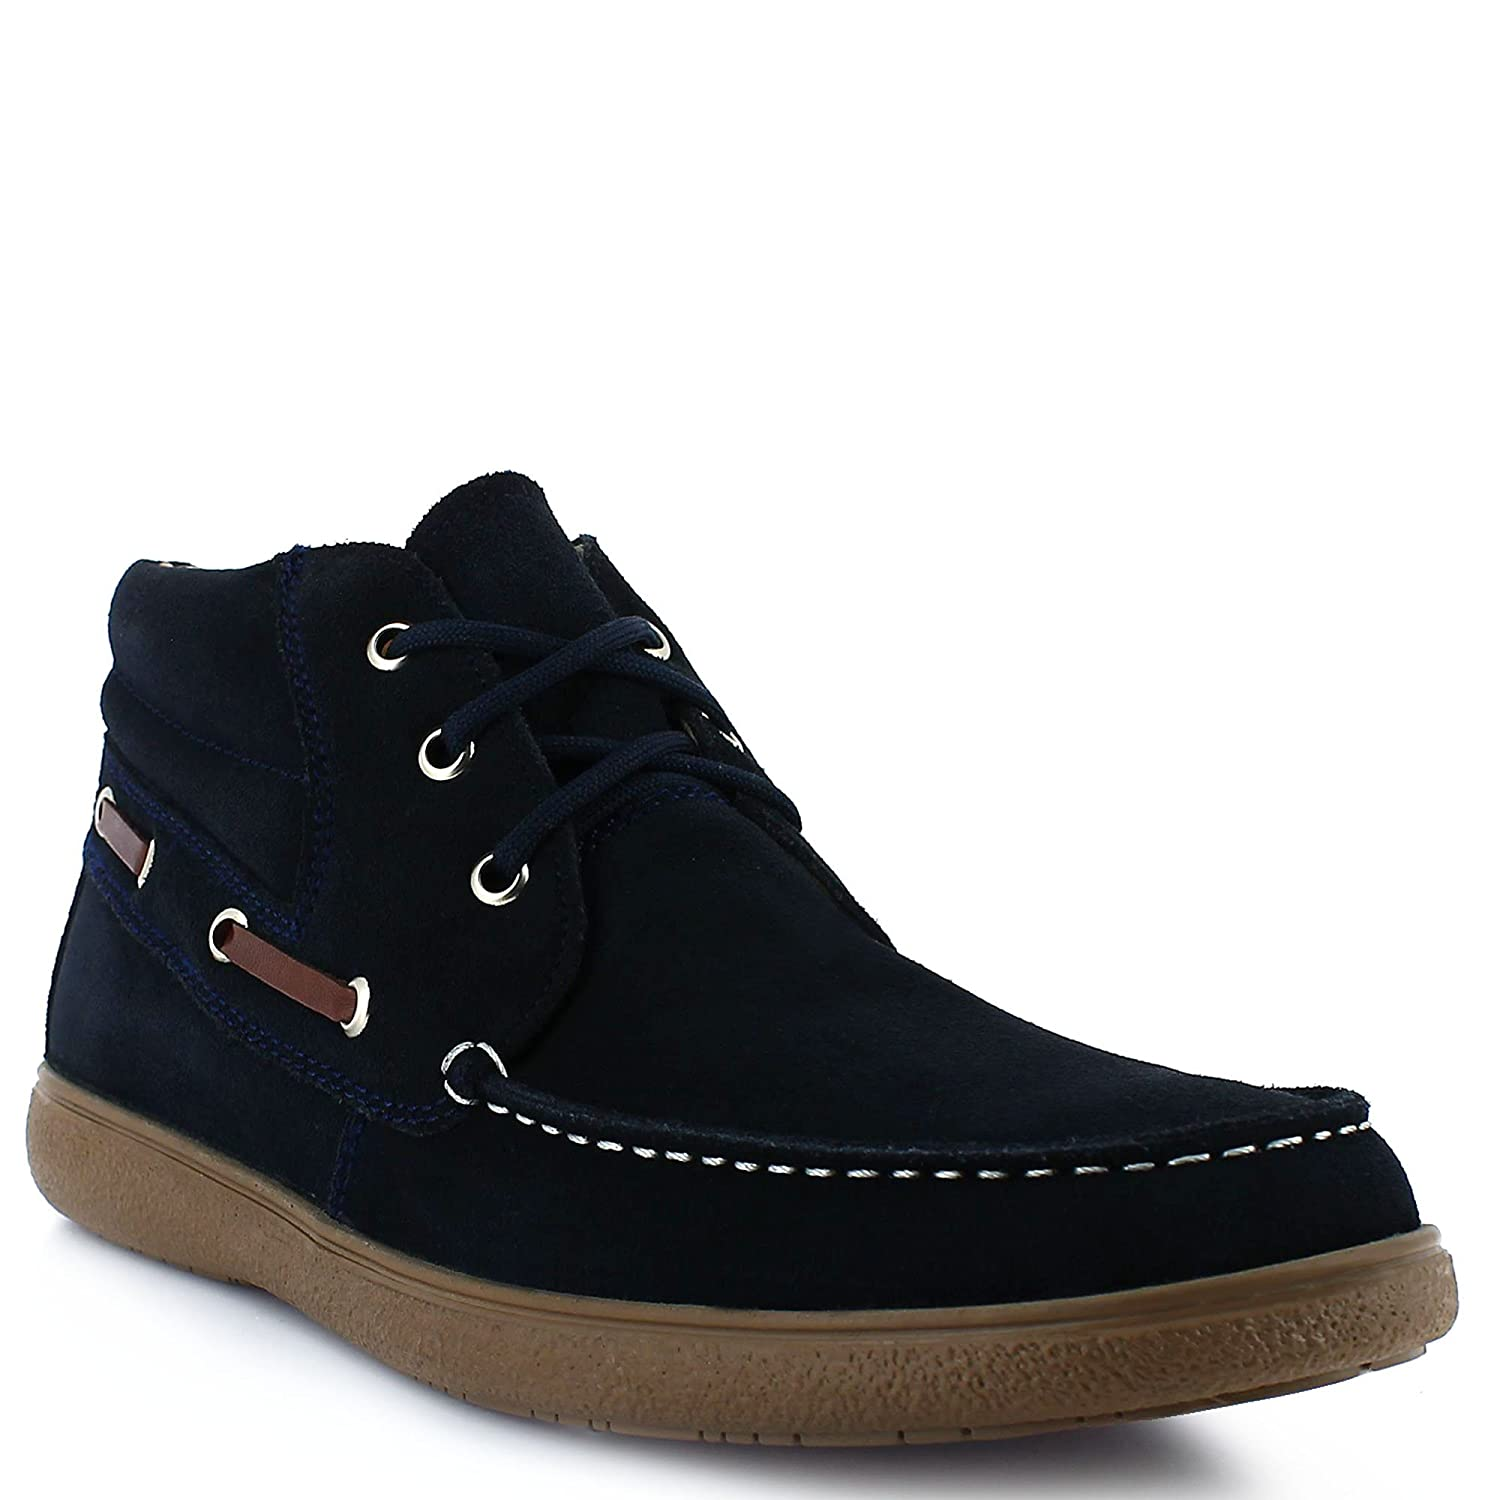 Armys casual loafer navy blue in suede material.